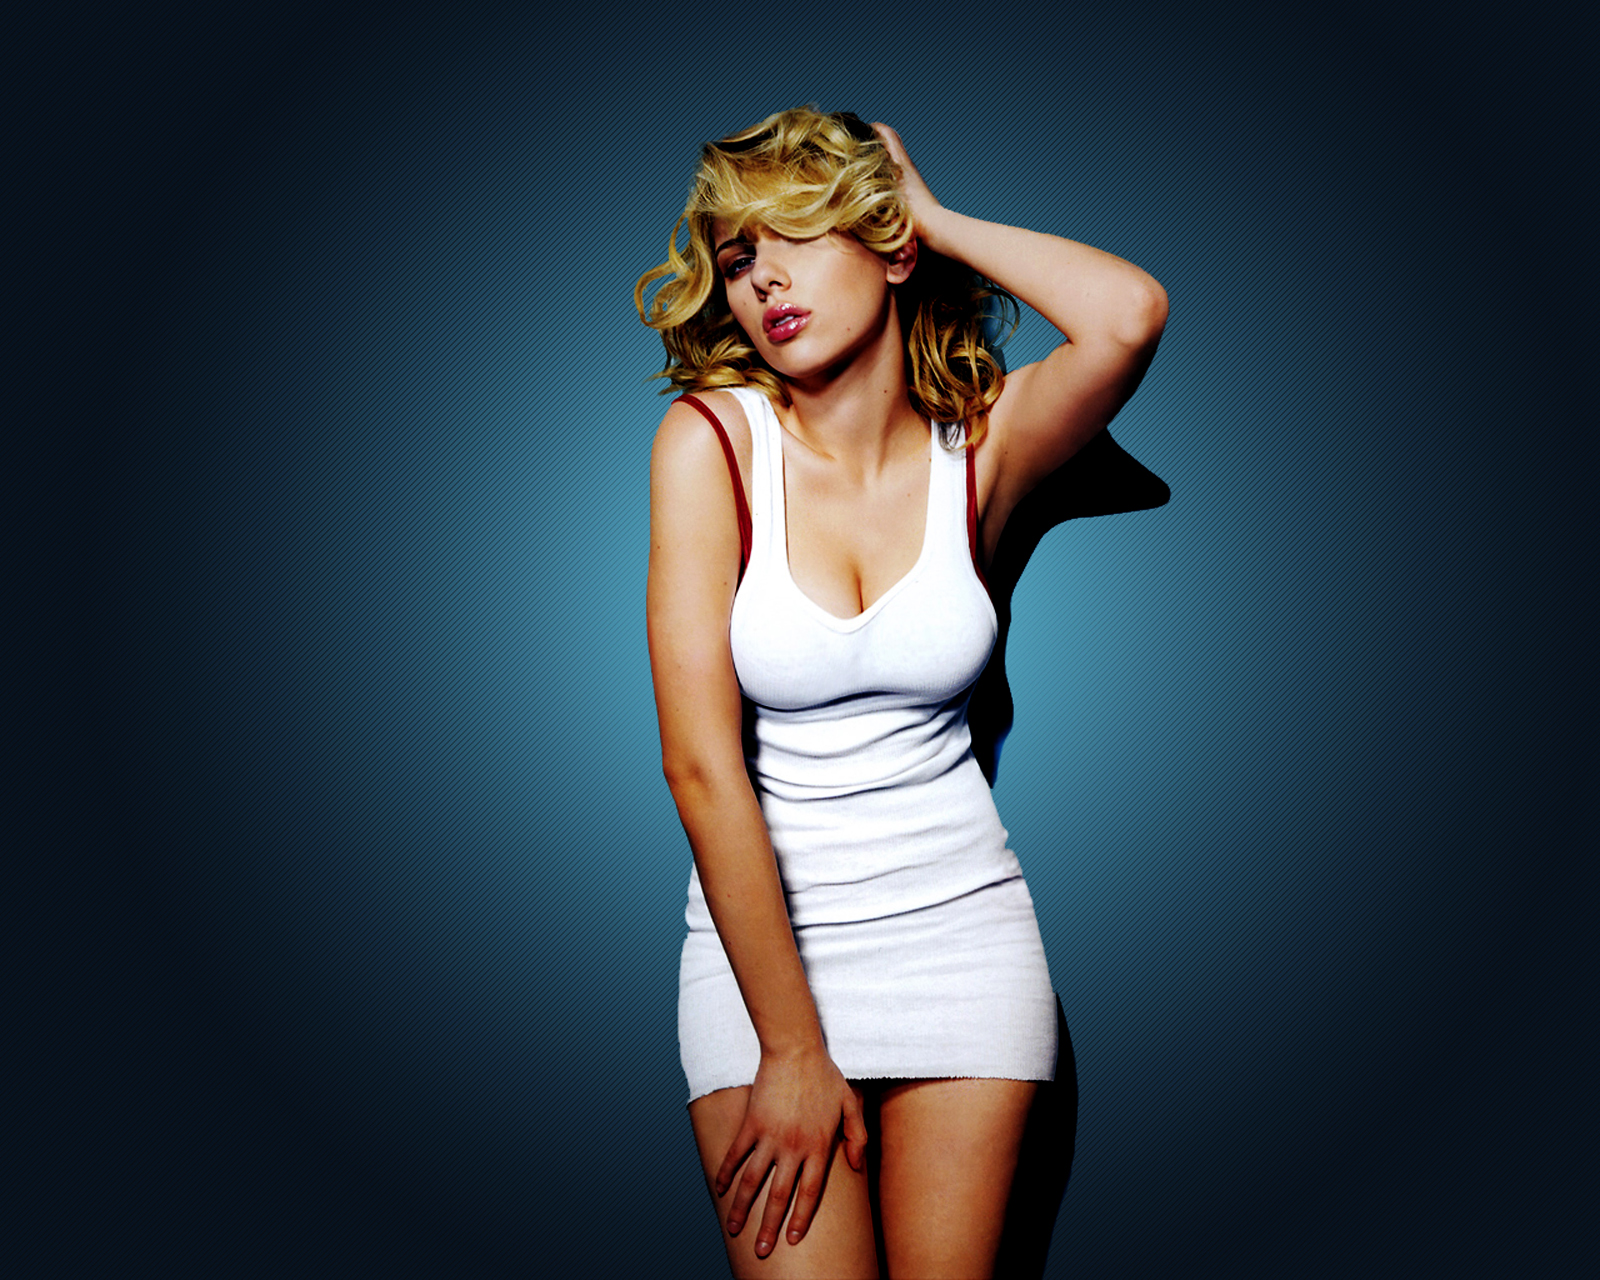 Beautiful Scarlett Johansson HD Wallpapers Gallery| HD Wallpapers ,Backgrounds ,Photos ,Pictures ...